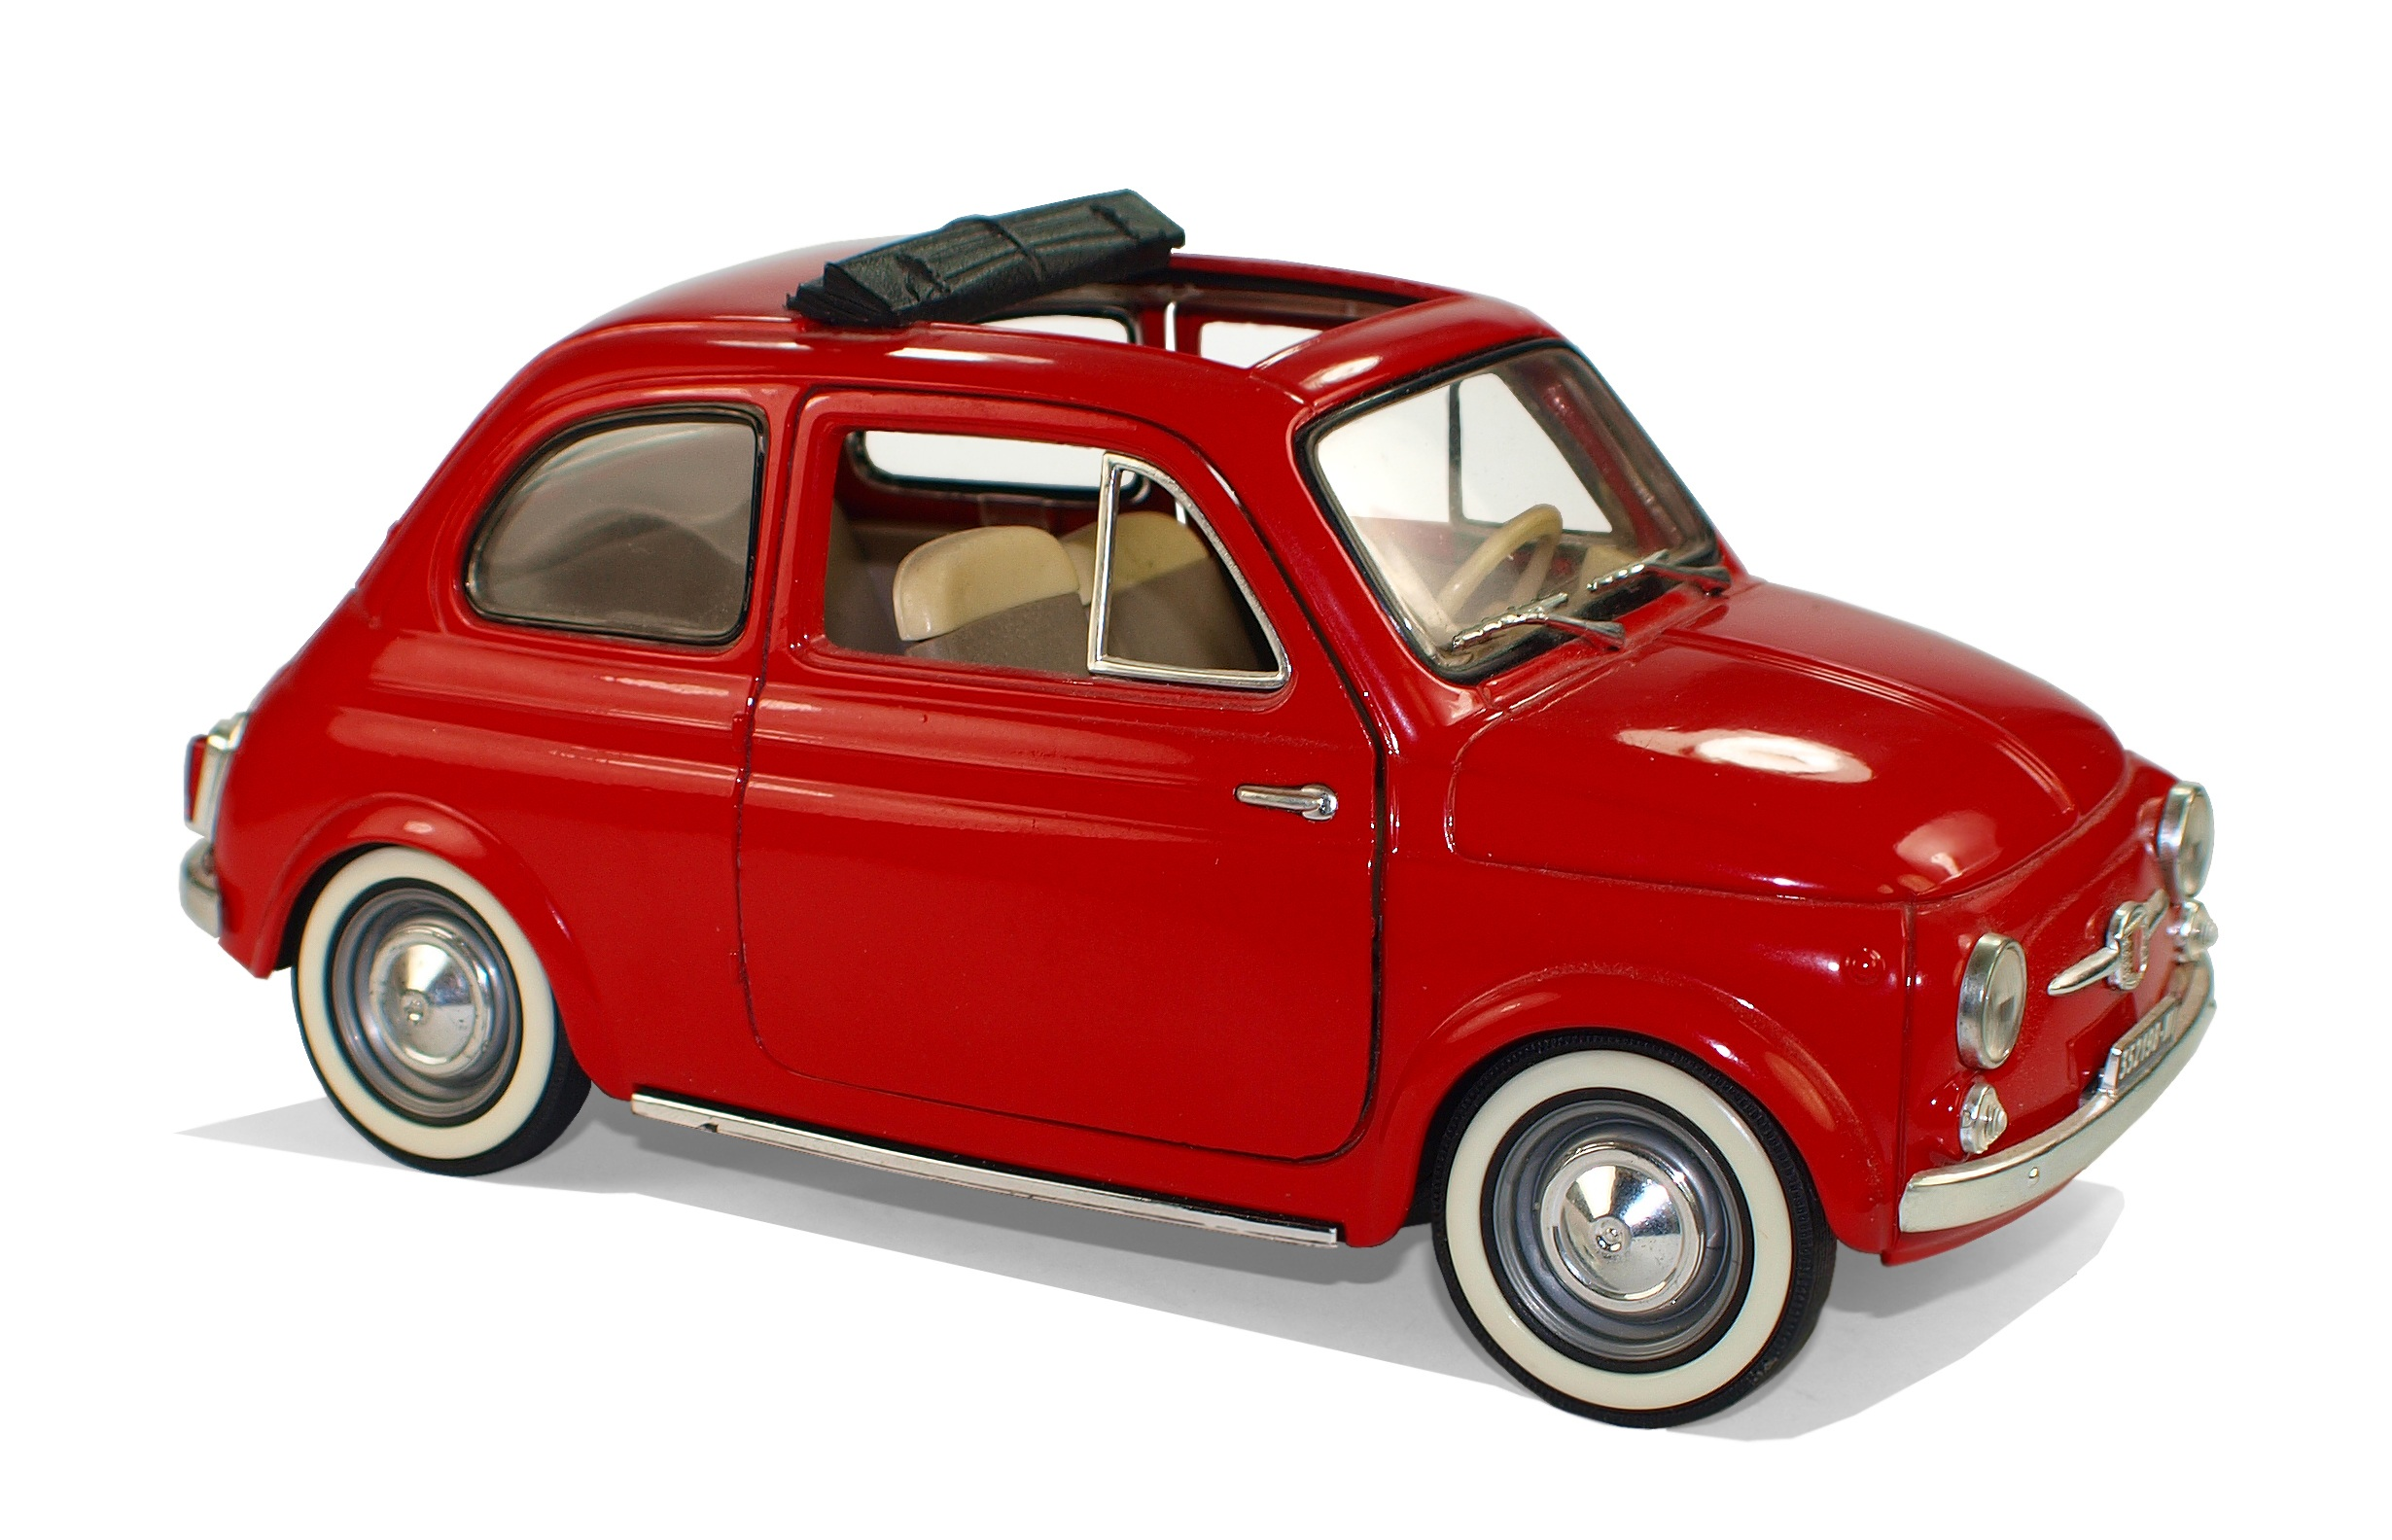 Vintage Car Wallpaper Transparent Red Classic Fiat 500 183 Free Stock Photo